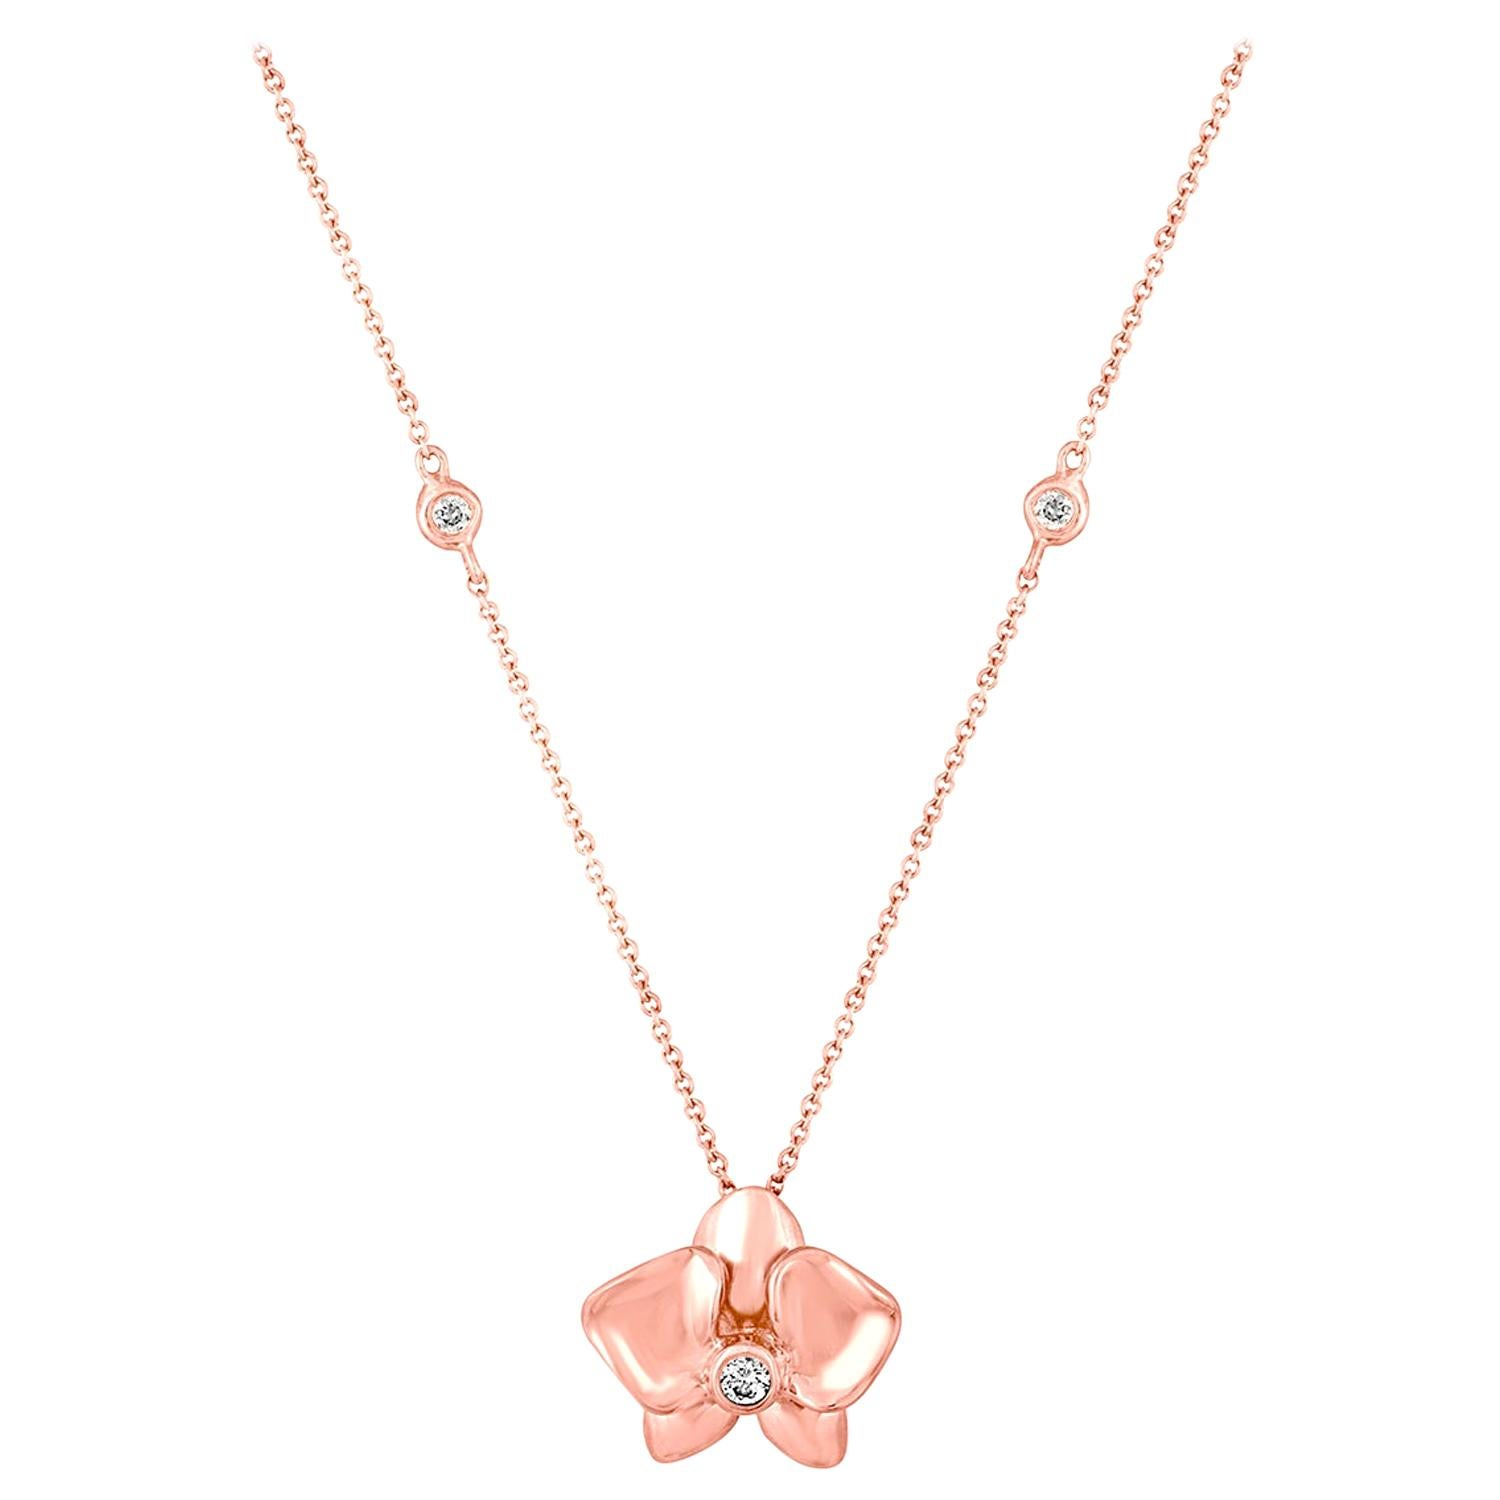 Diamond and Rose Gold Flower Pendant Chain Necklace